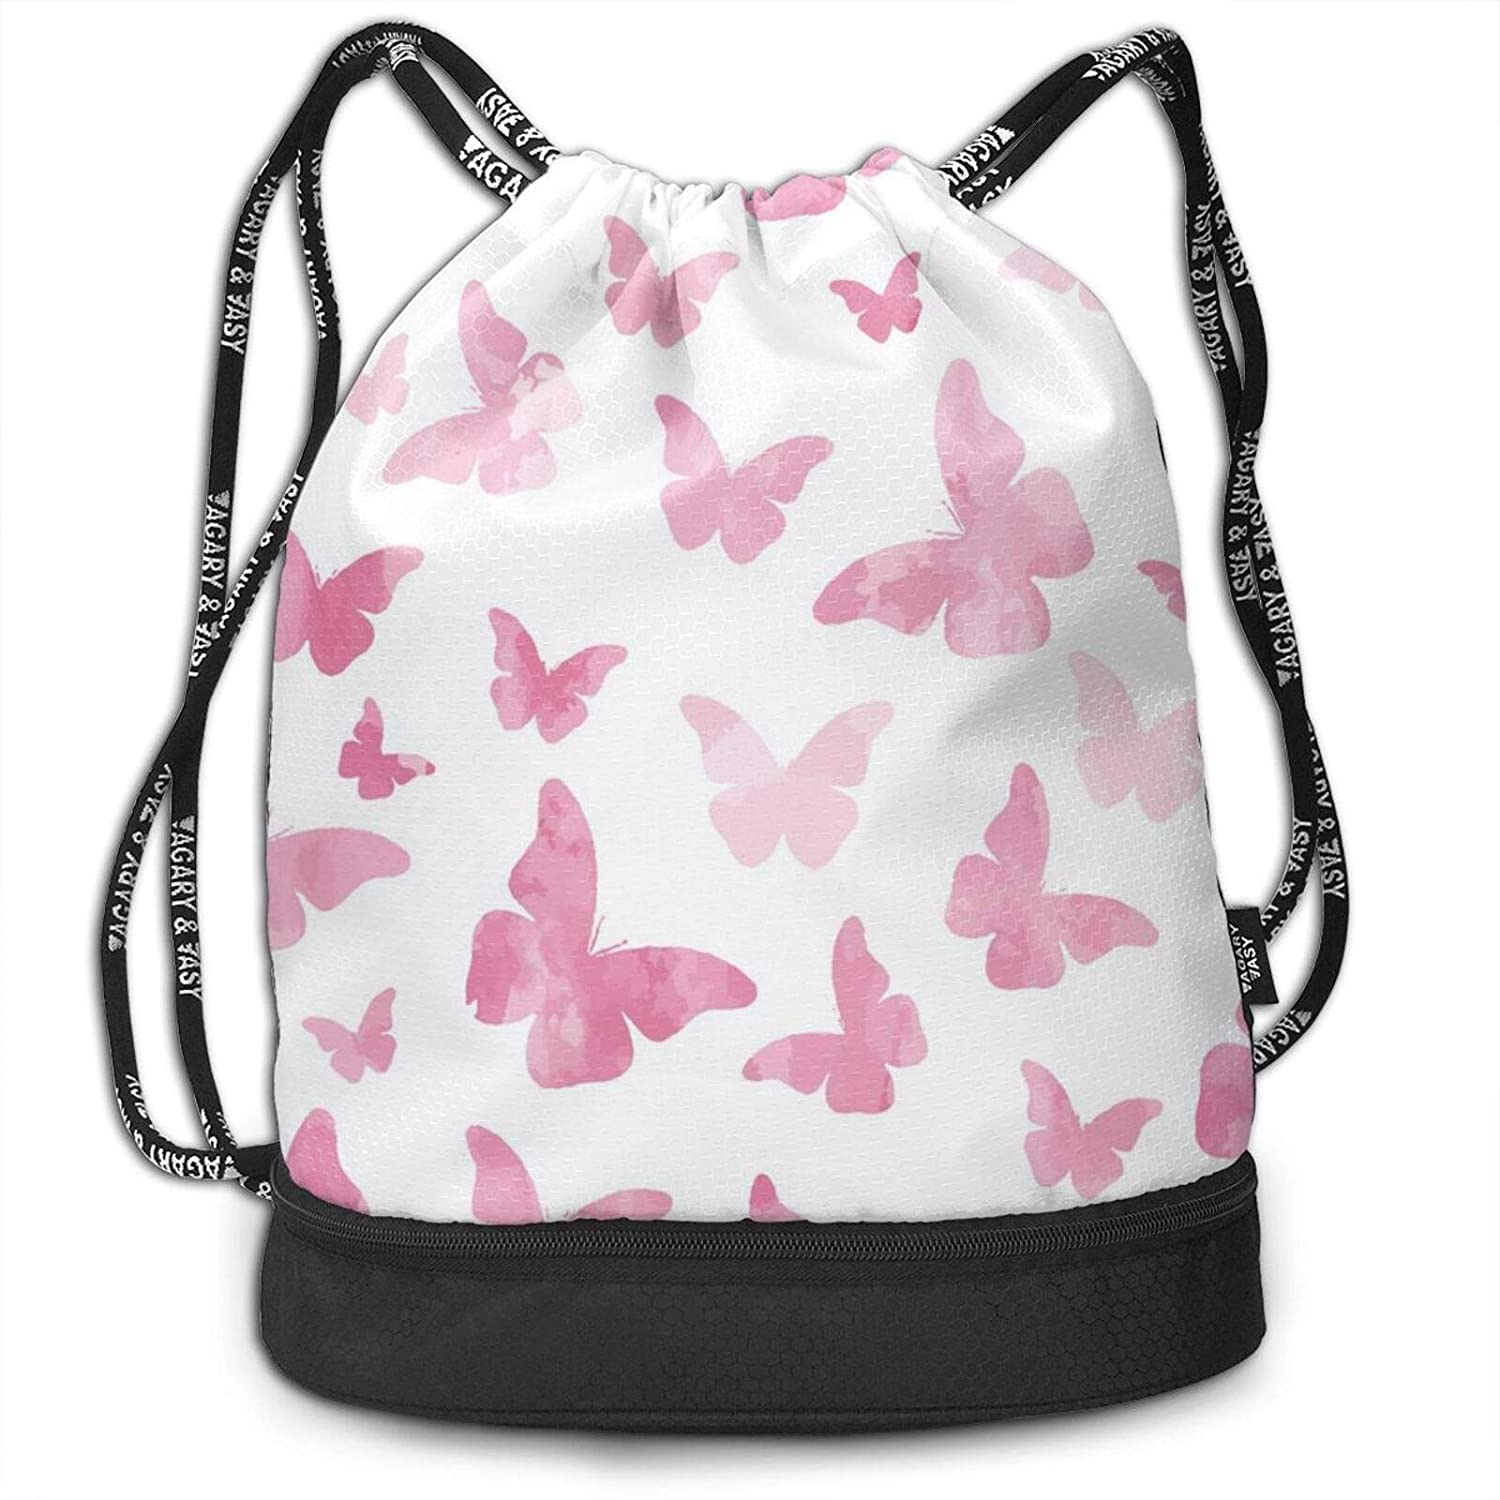 D-WOLVES Graphic Drawstring Bags Basketball Bulk Large Size Drawstring Backpack With Zipper Compartment Cinch Fashion Bags With Pattern Watercolor Pink Butterflies Pattern